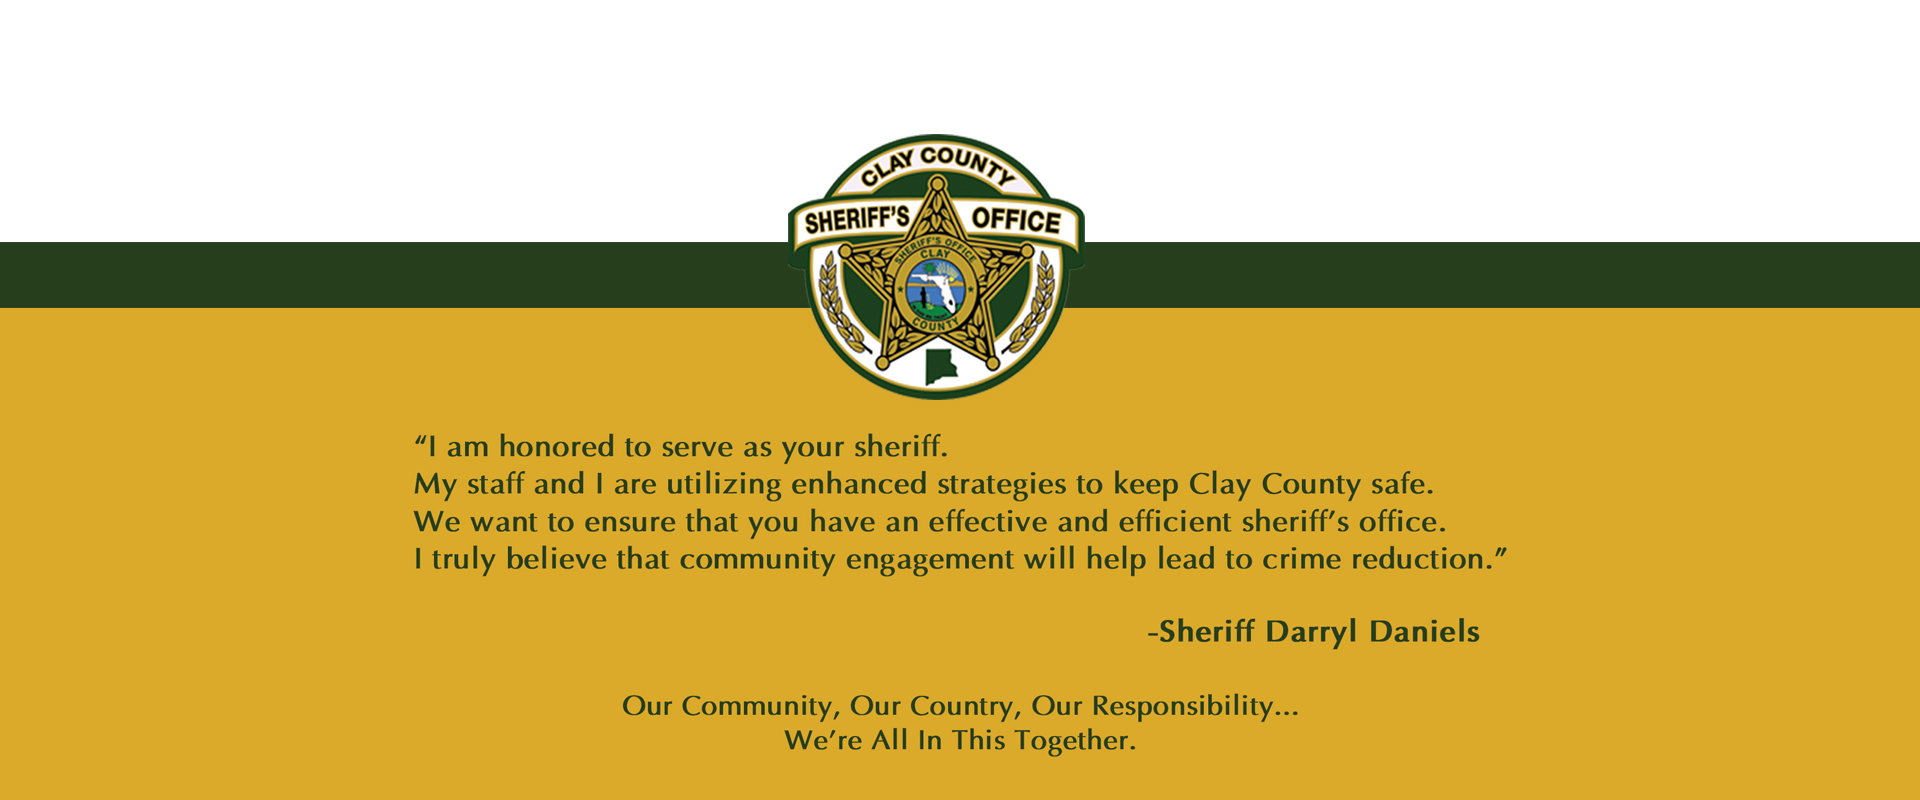 Clay County (Florida) Sheriff's Office